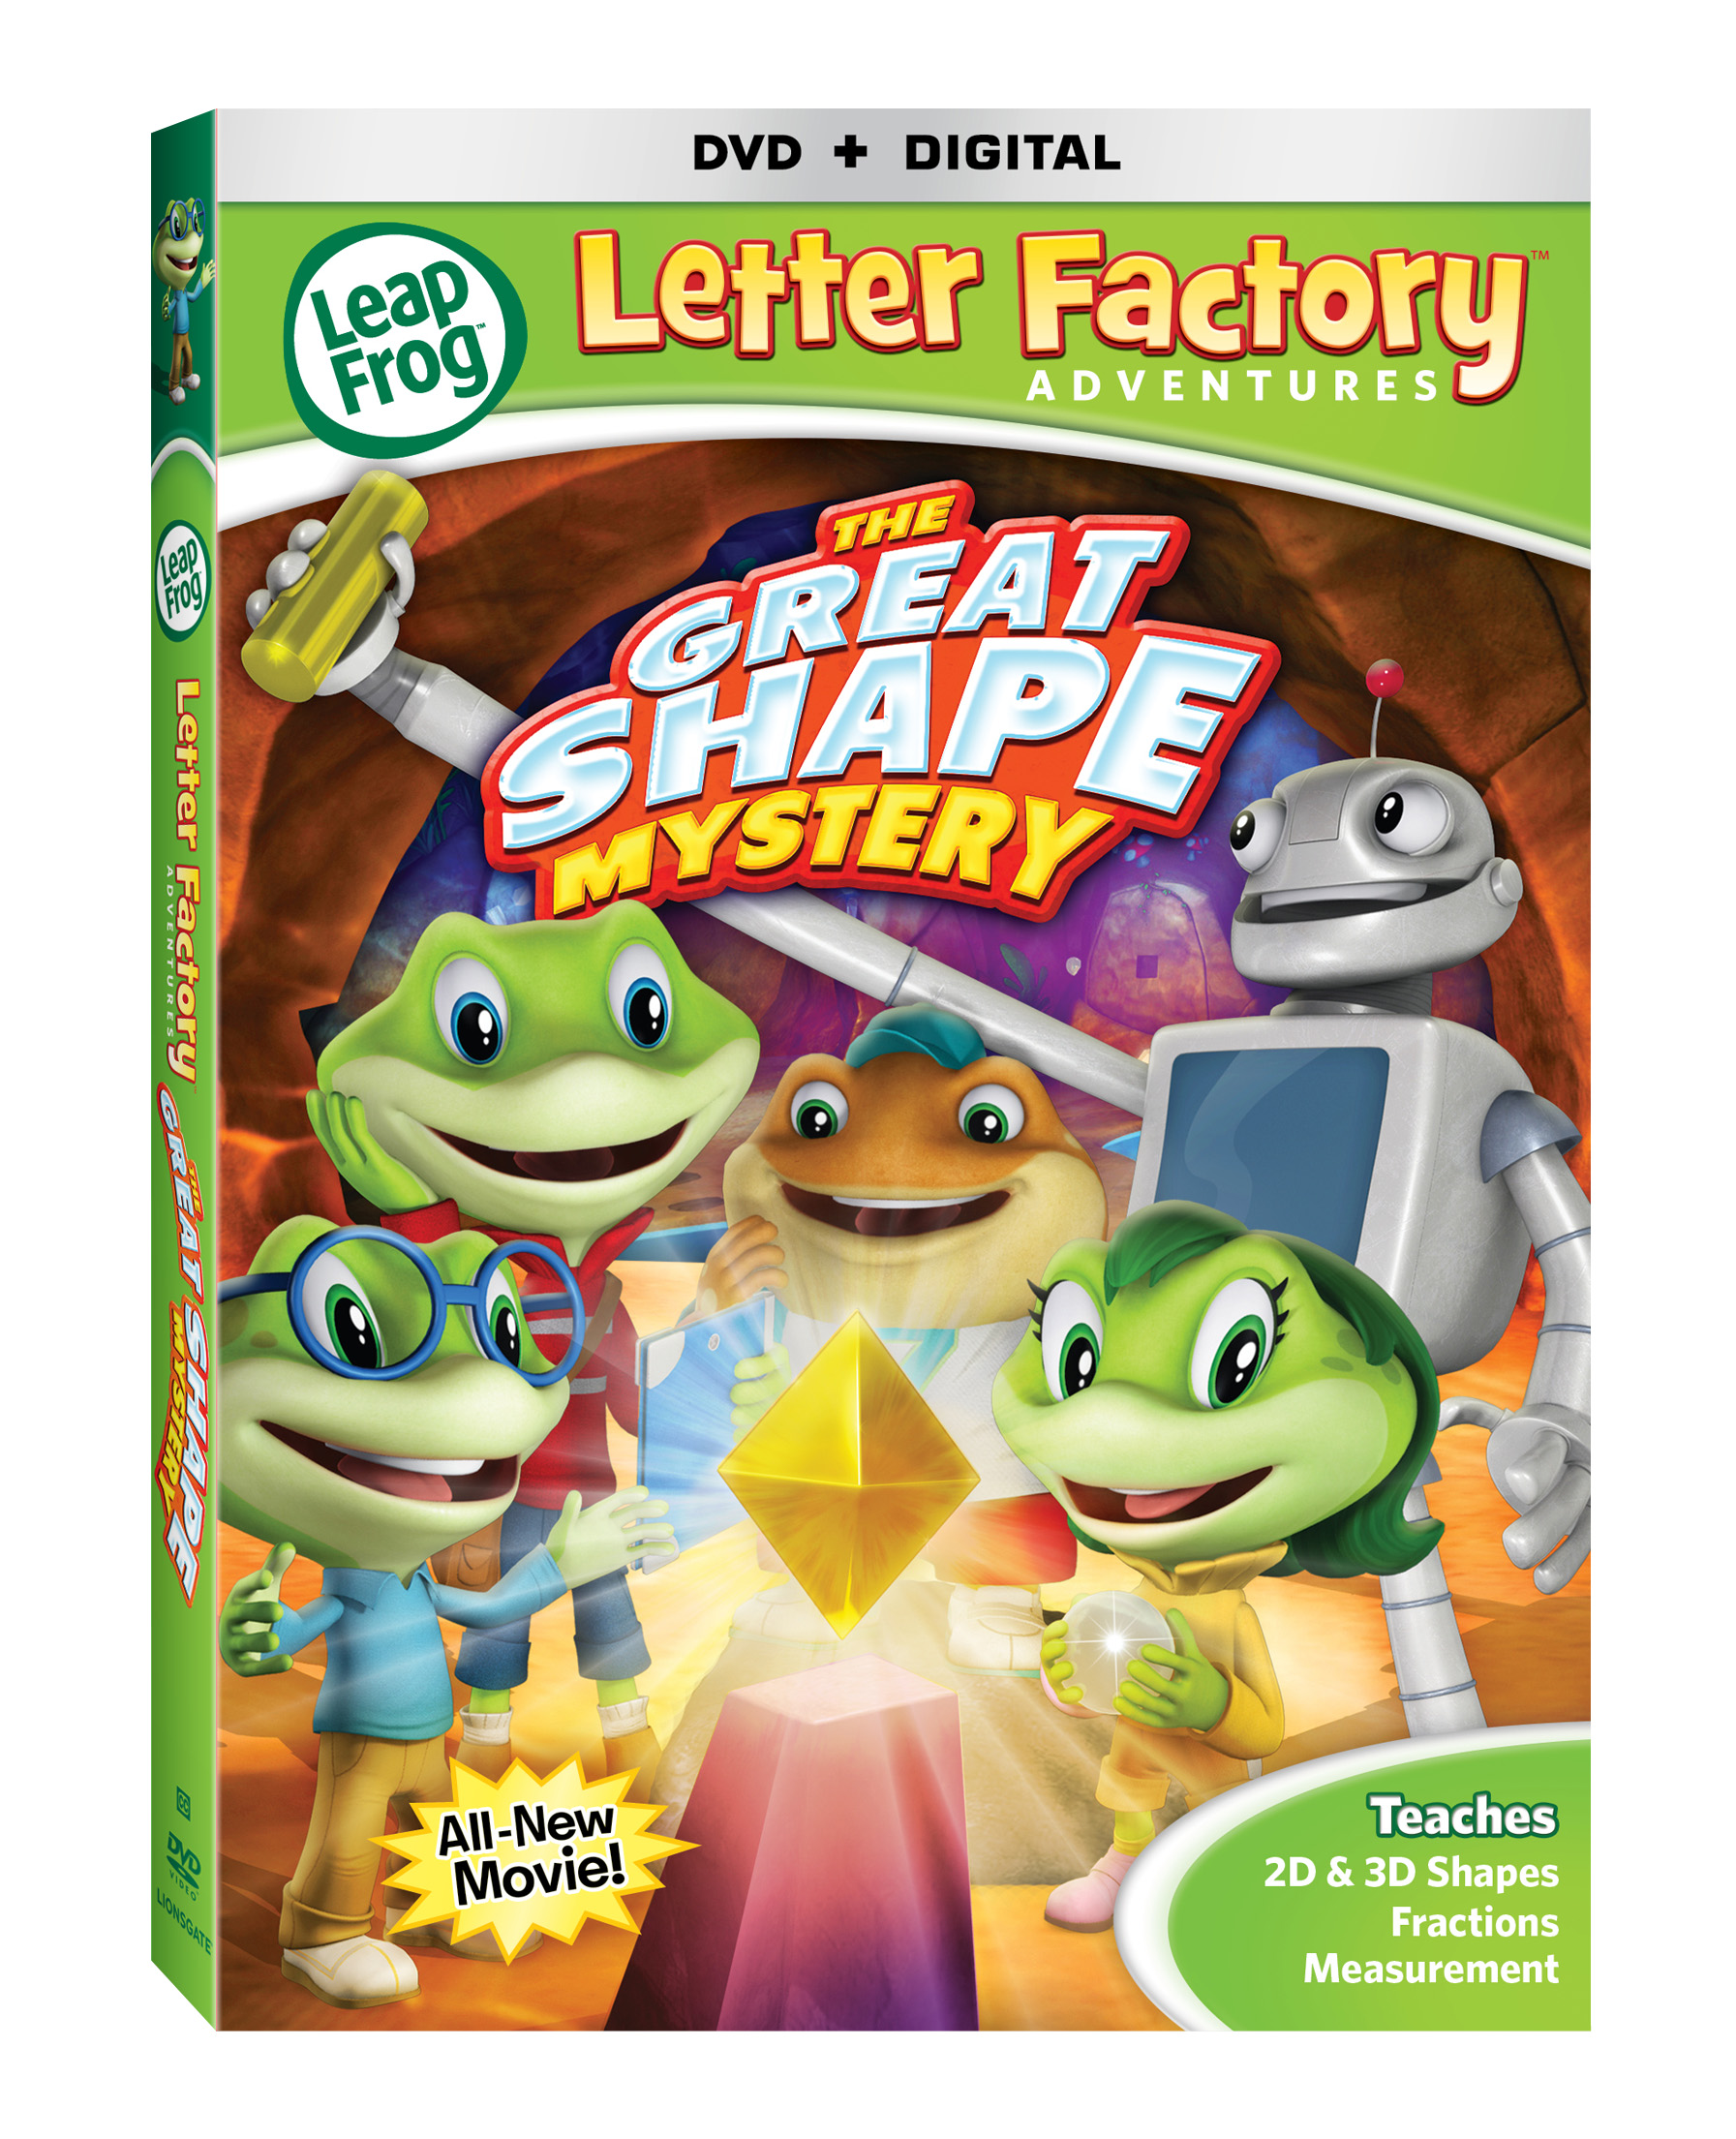 used leapfrog letterfactory dvd 3 flickr photo gift guide for toddlers 2015 theresa s reviews 456